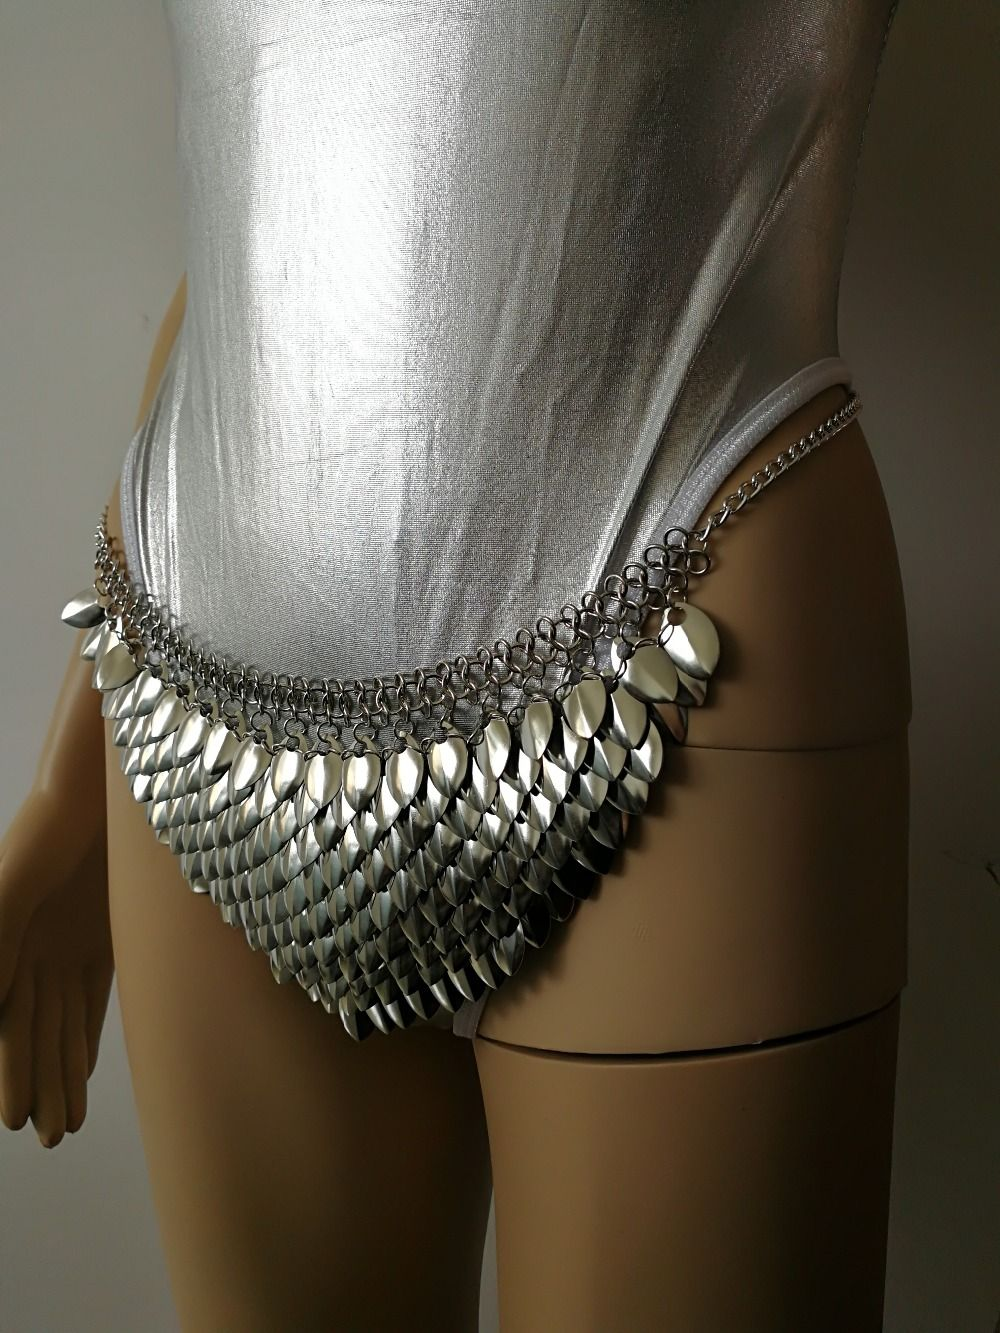 b5c175d703f8b New Fashion Style B754 Silver Scalemail Mermaid Fish Scales Loin Cloth Skirt  Chainmail Belly Chains Jewelry Layers Waist Chains on Aliexpress.com